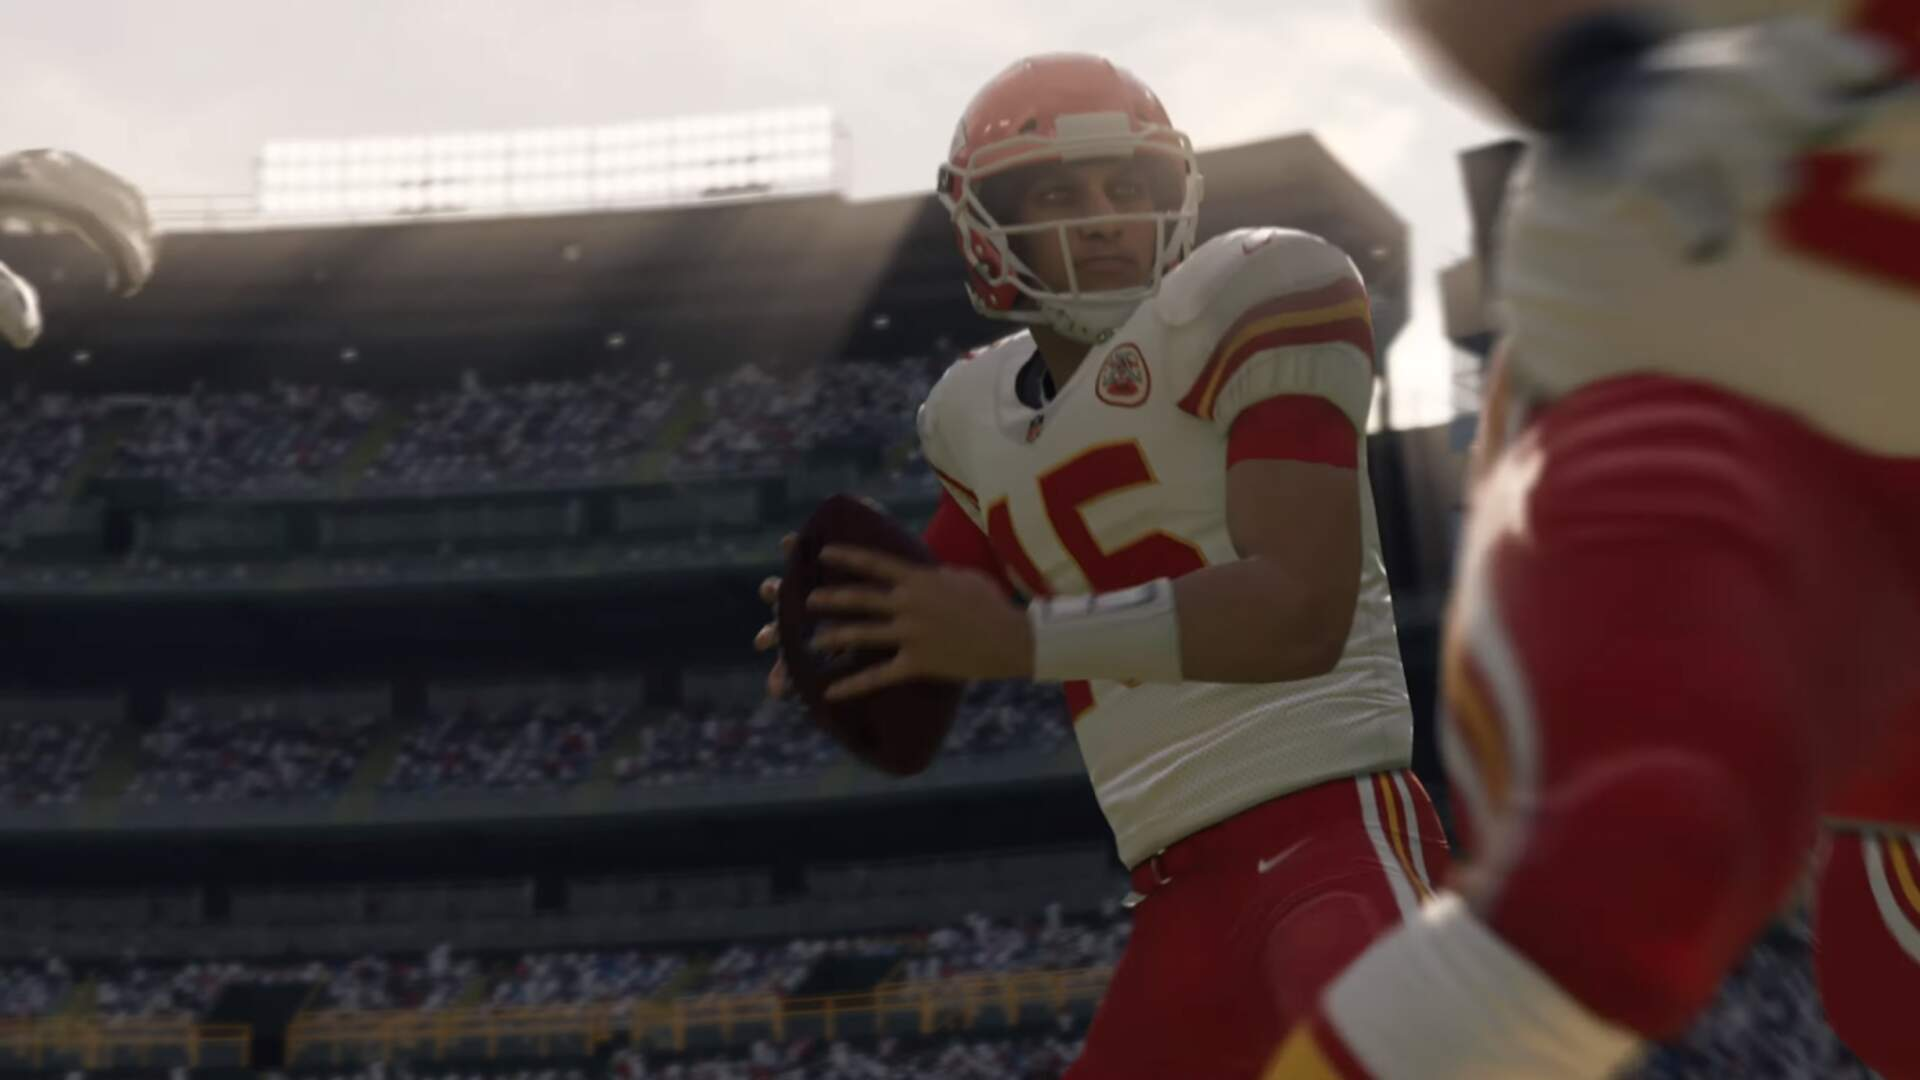 Report: EA and the NFL Will Extend Their Madden Partnership to 2025